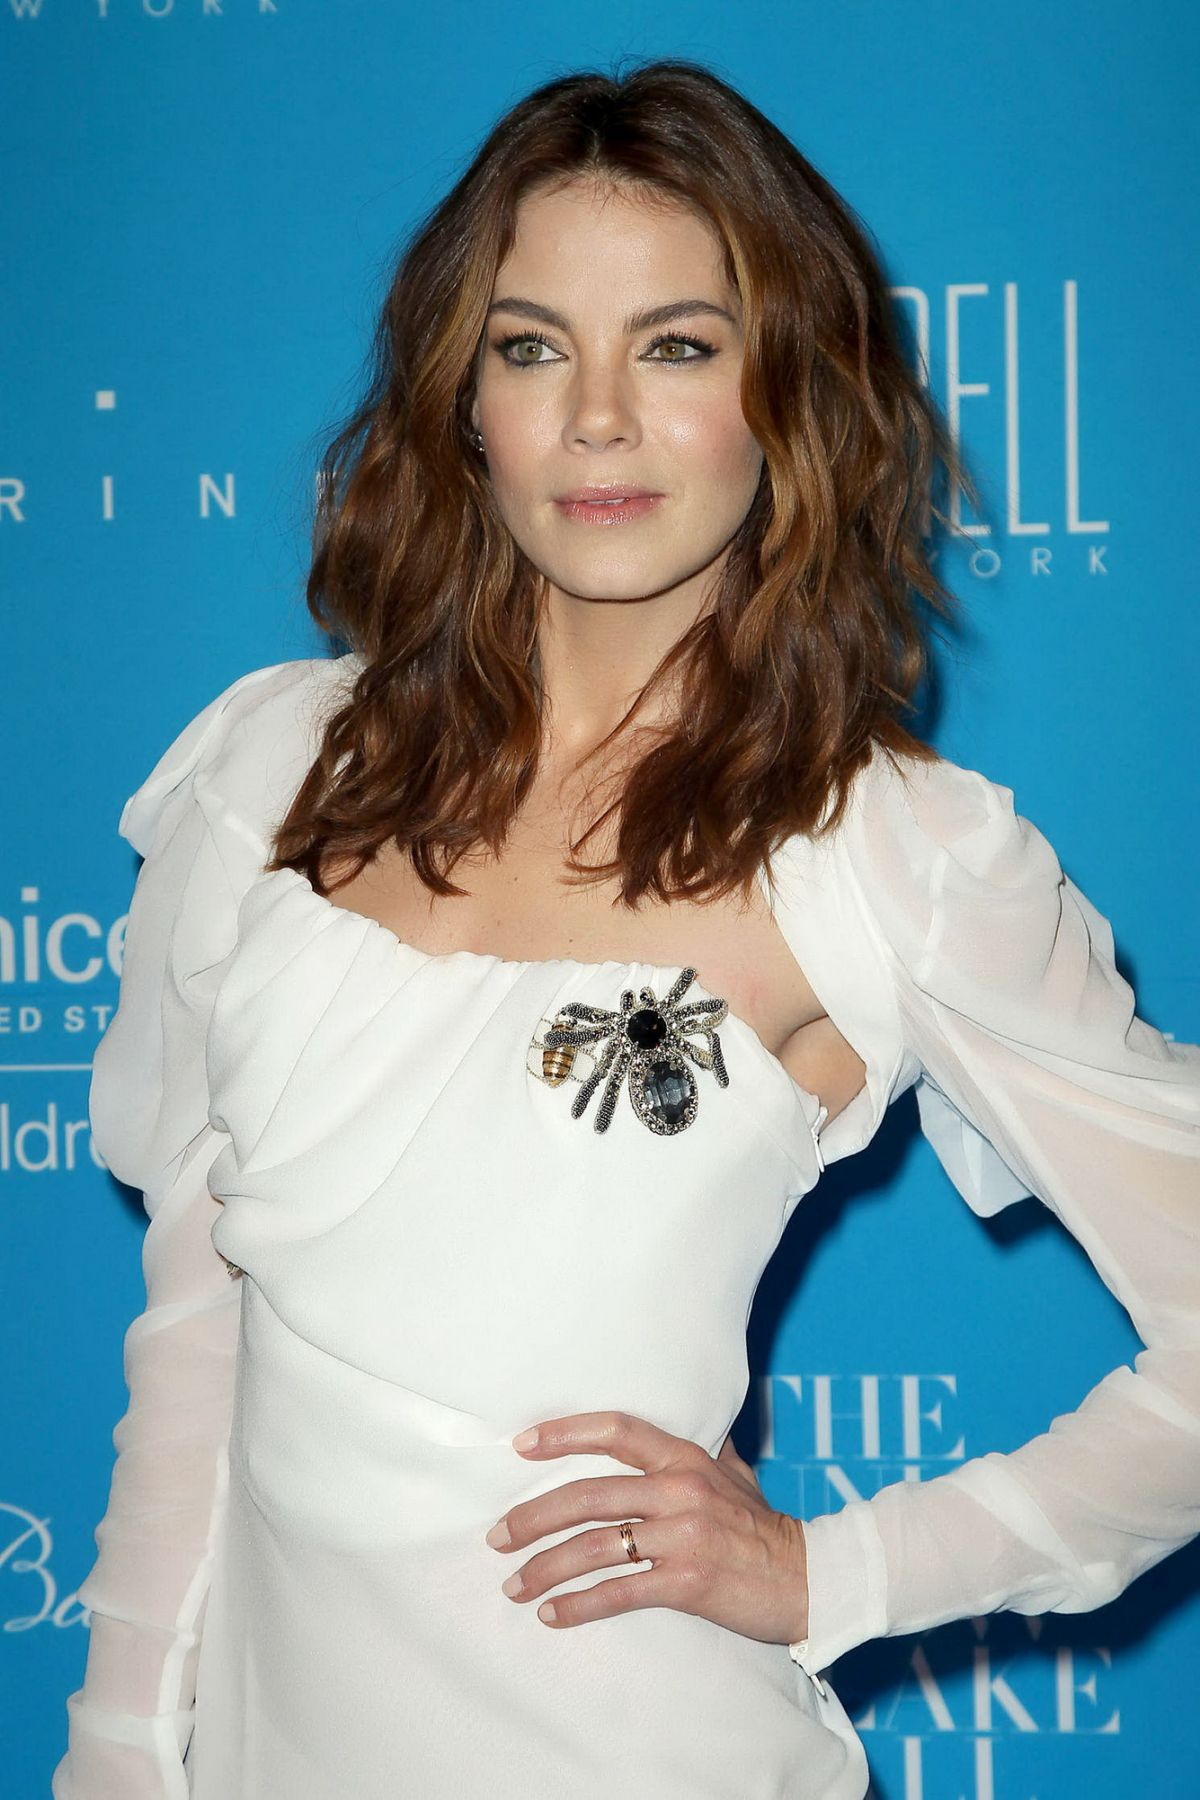 MICHELLE MONAGHAN at 2015 Unicef Snowflake Ball in New York 12/01/2015